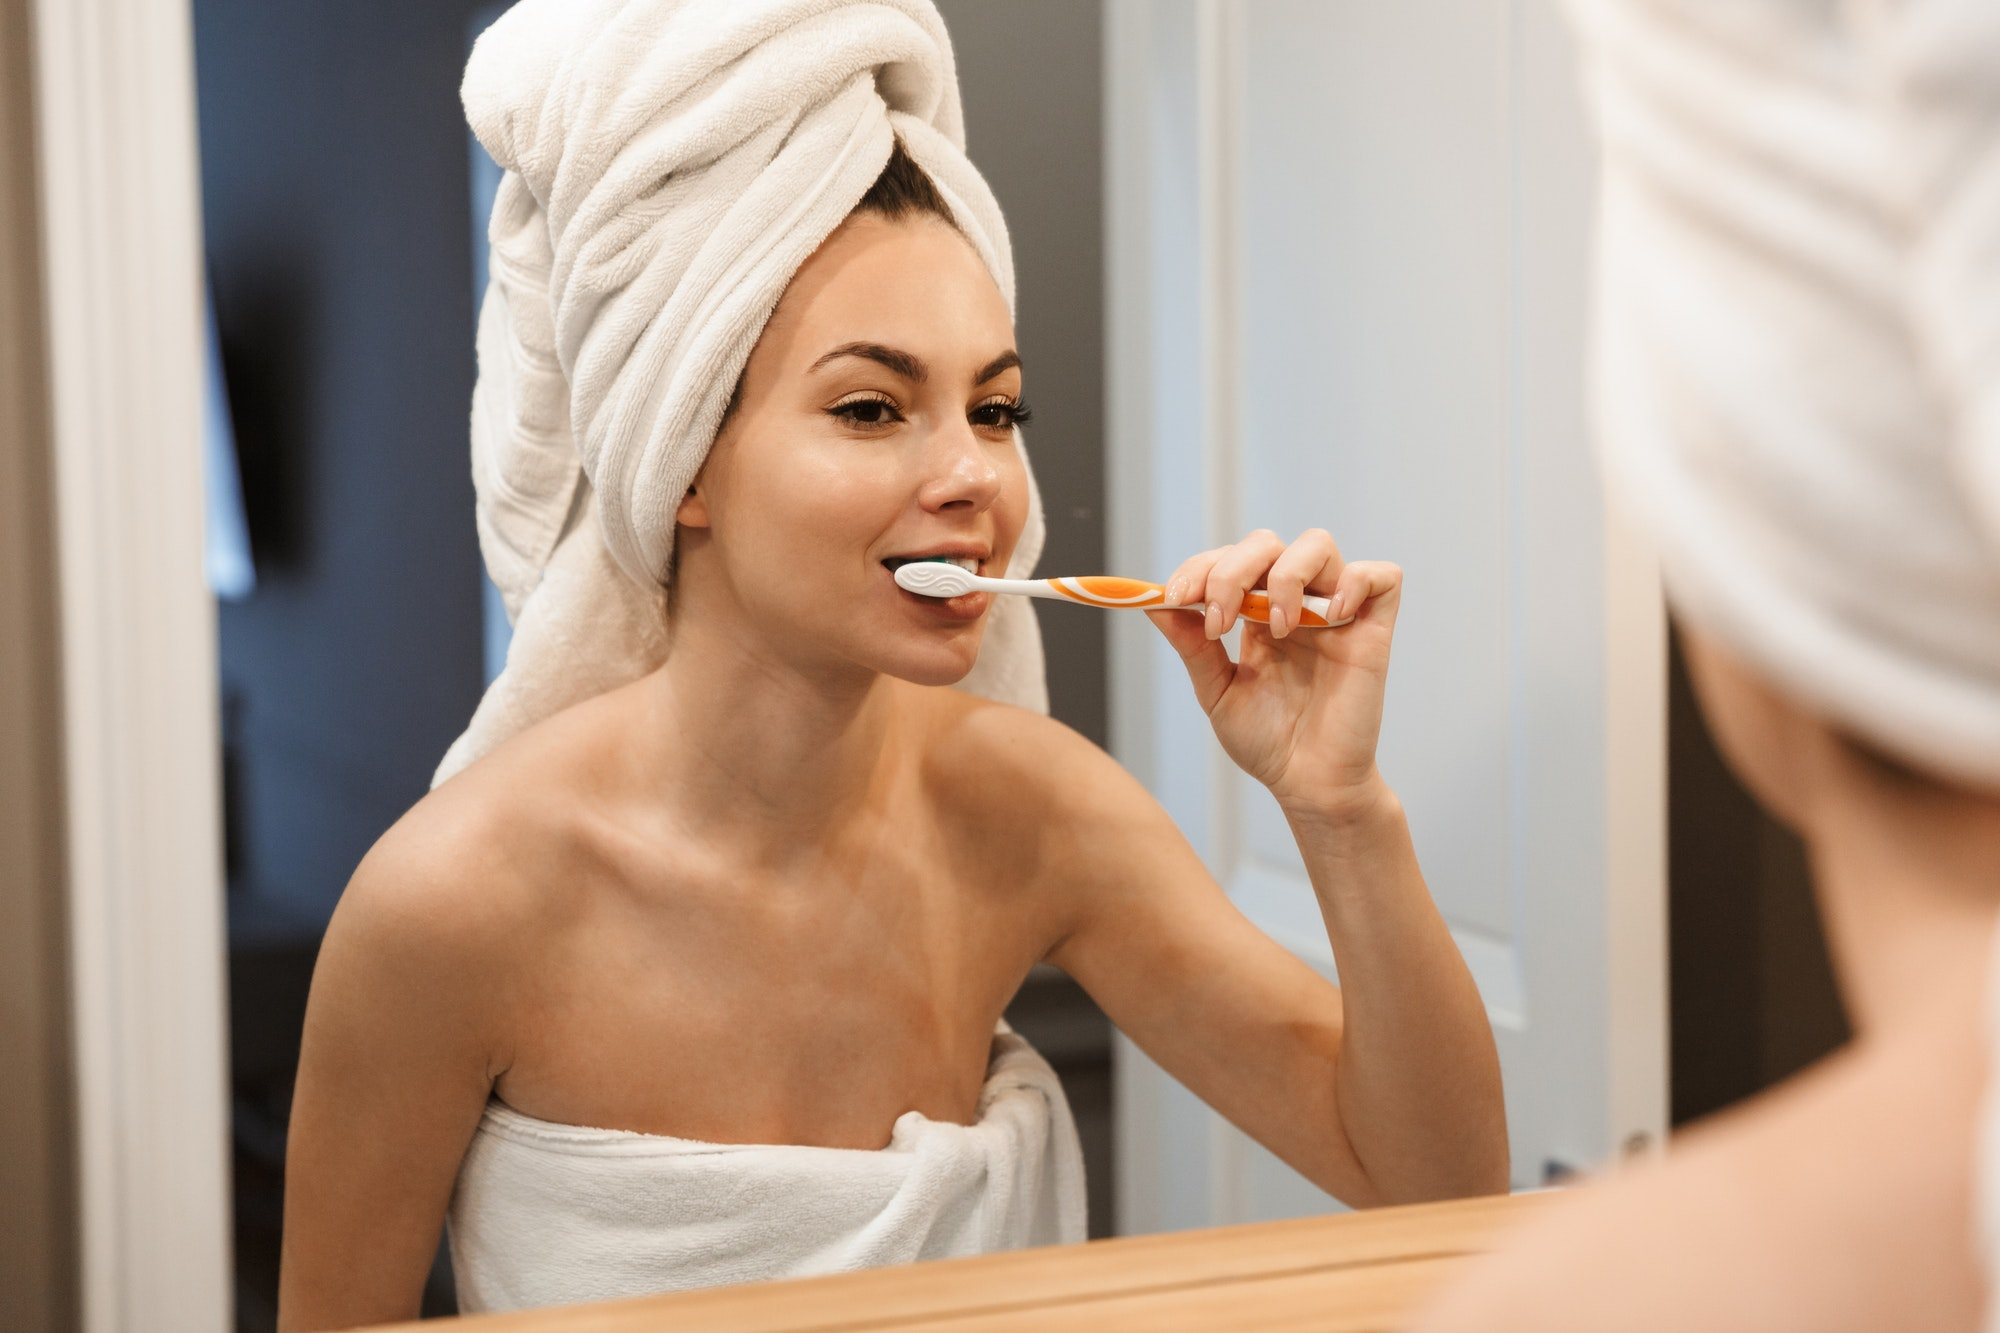 Image of smiling woman brushing teeth and looking at mirror